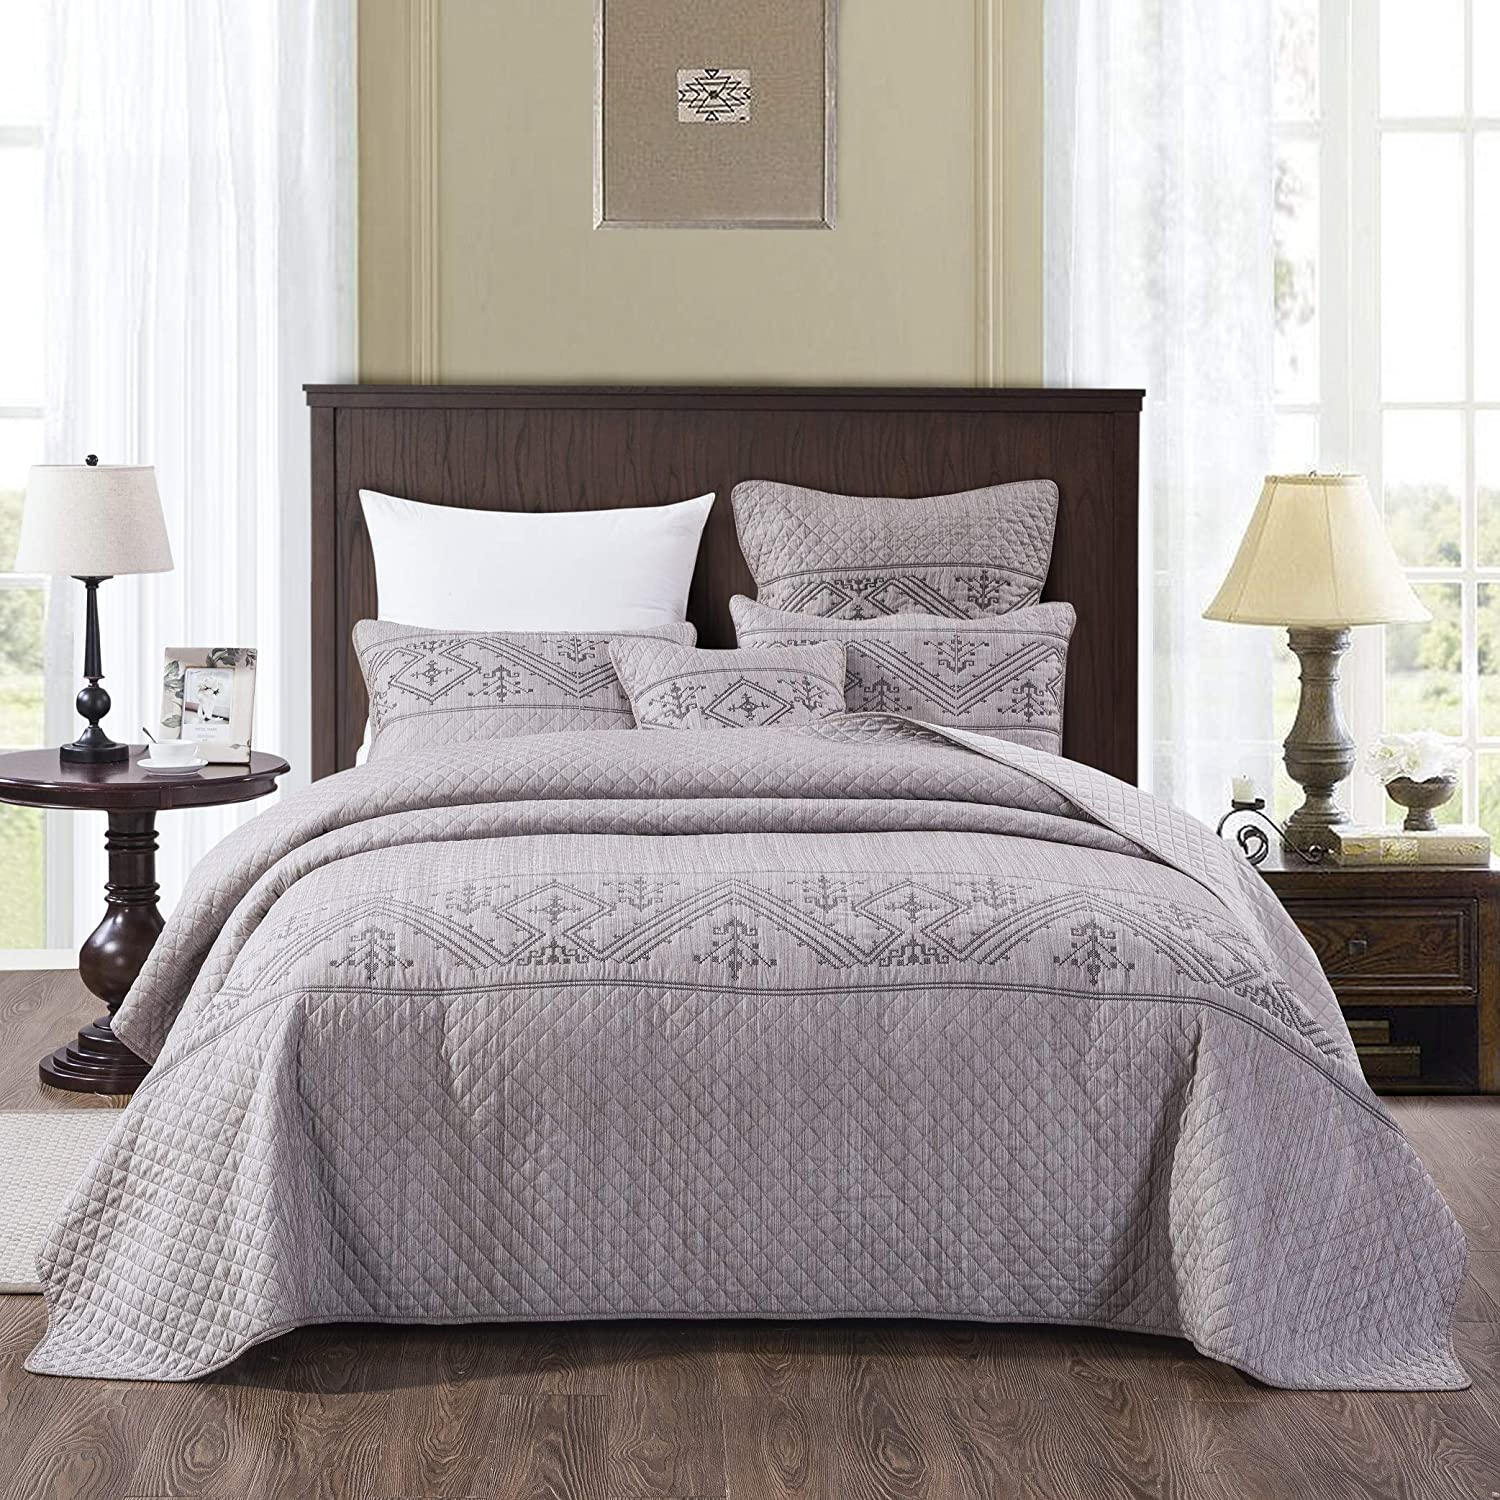 DaDa Bedding Dainty Cottage Fair Isle Bedspread - Light Purple Grey Yarn Dyed Jersey Fabric Quilted Coverlet Set - Soft Needle Stitching Embroidery Pattern - Full Size - 3-Pieces